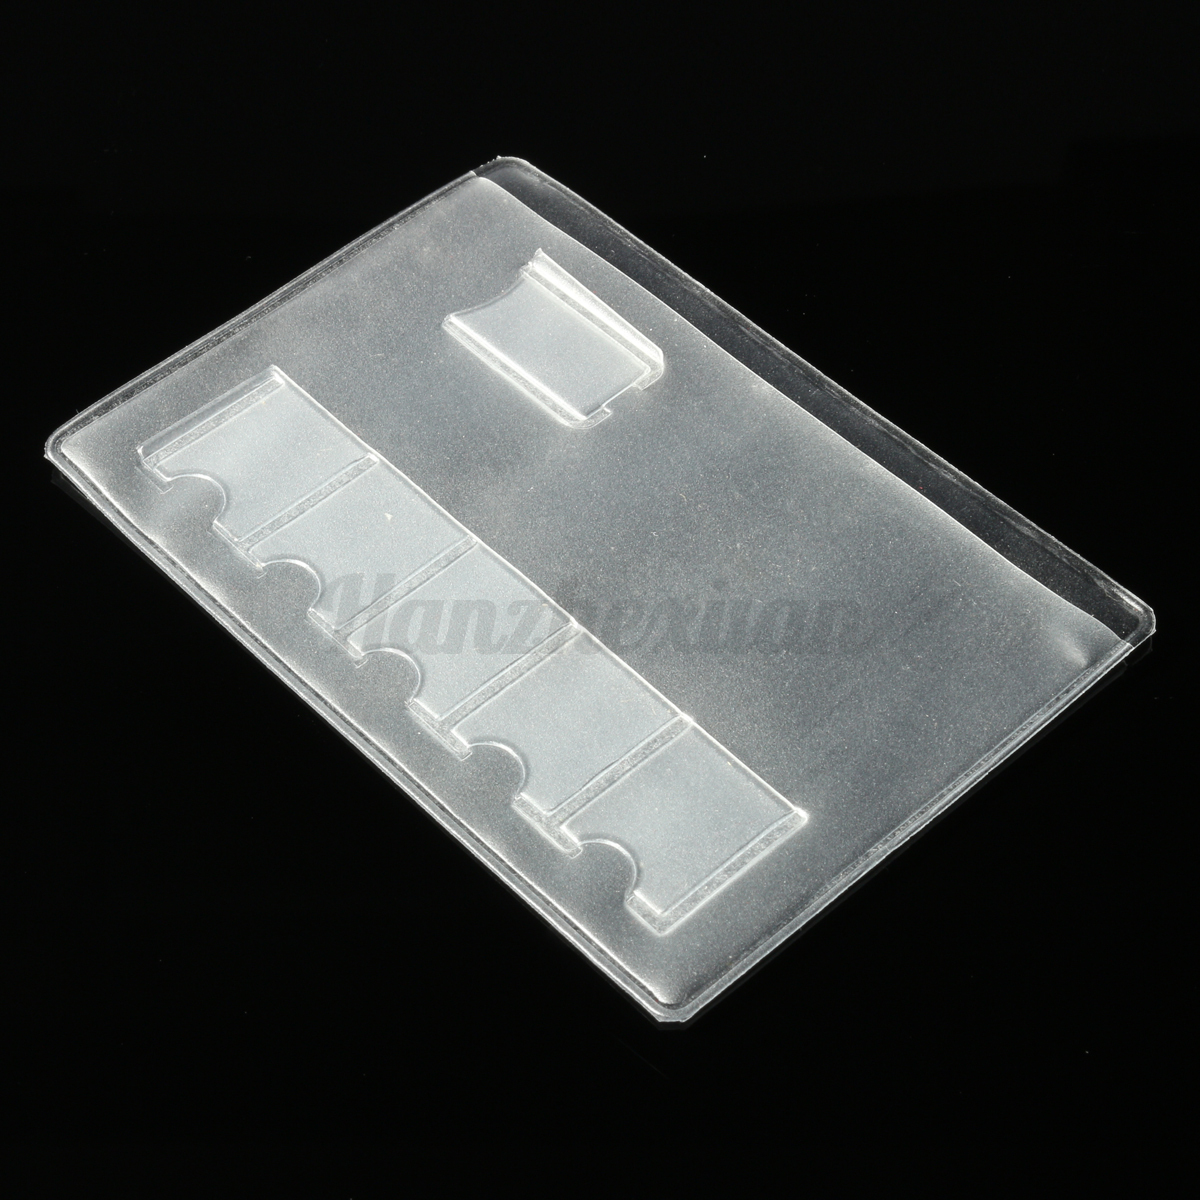 SIM Card Storage Case For Nano & iPhone Eject Pin Credit Card Holder  ! 7